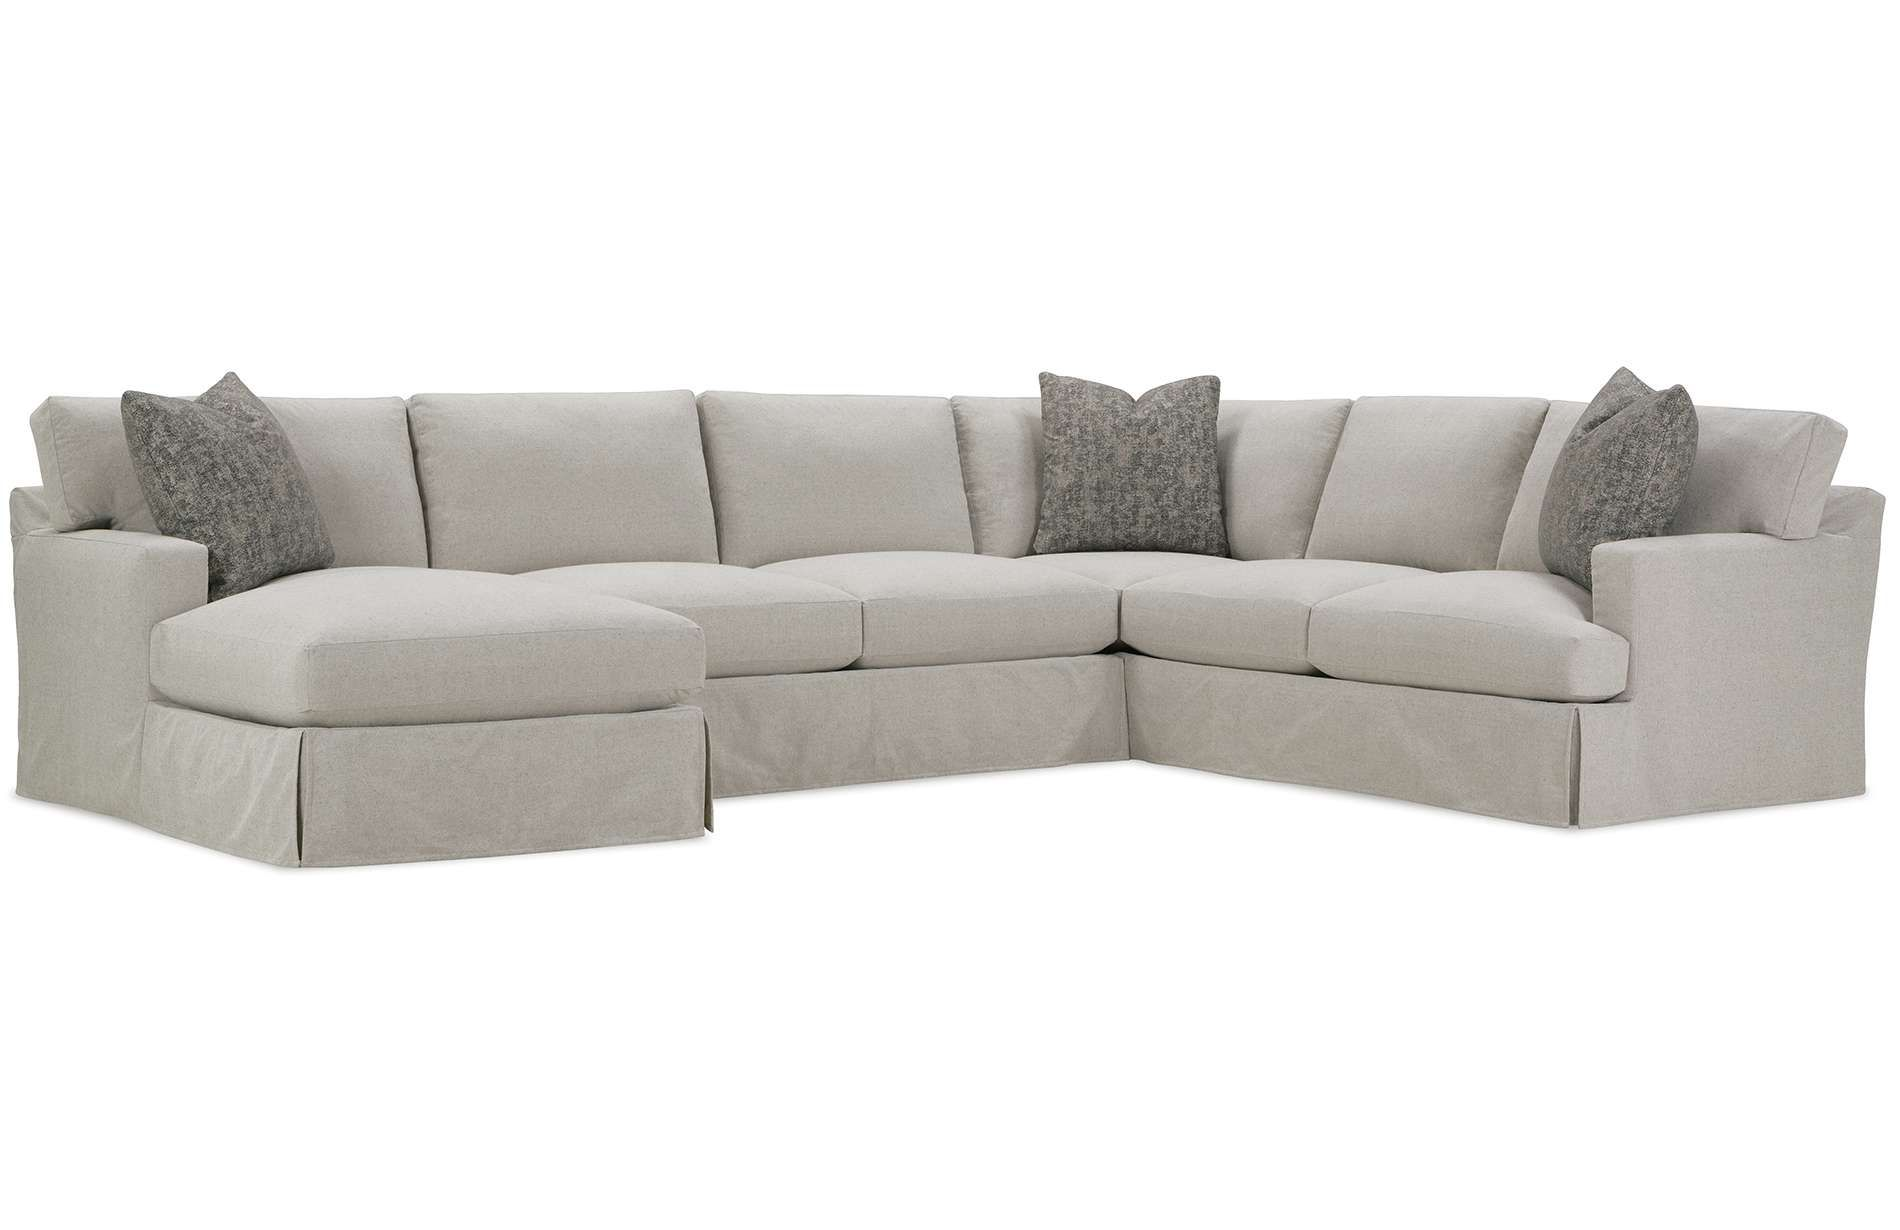 The Grayson Slipcover Sectional Sofa Is Designed For Those That Want Comfort With A Traditional St In 2020 Sectional Sofa Slipcovers Sectional Slipcover Rowe Furniture